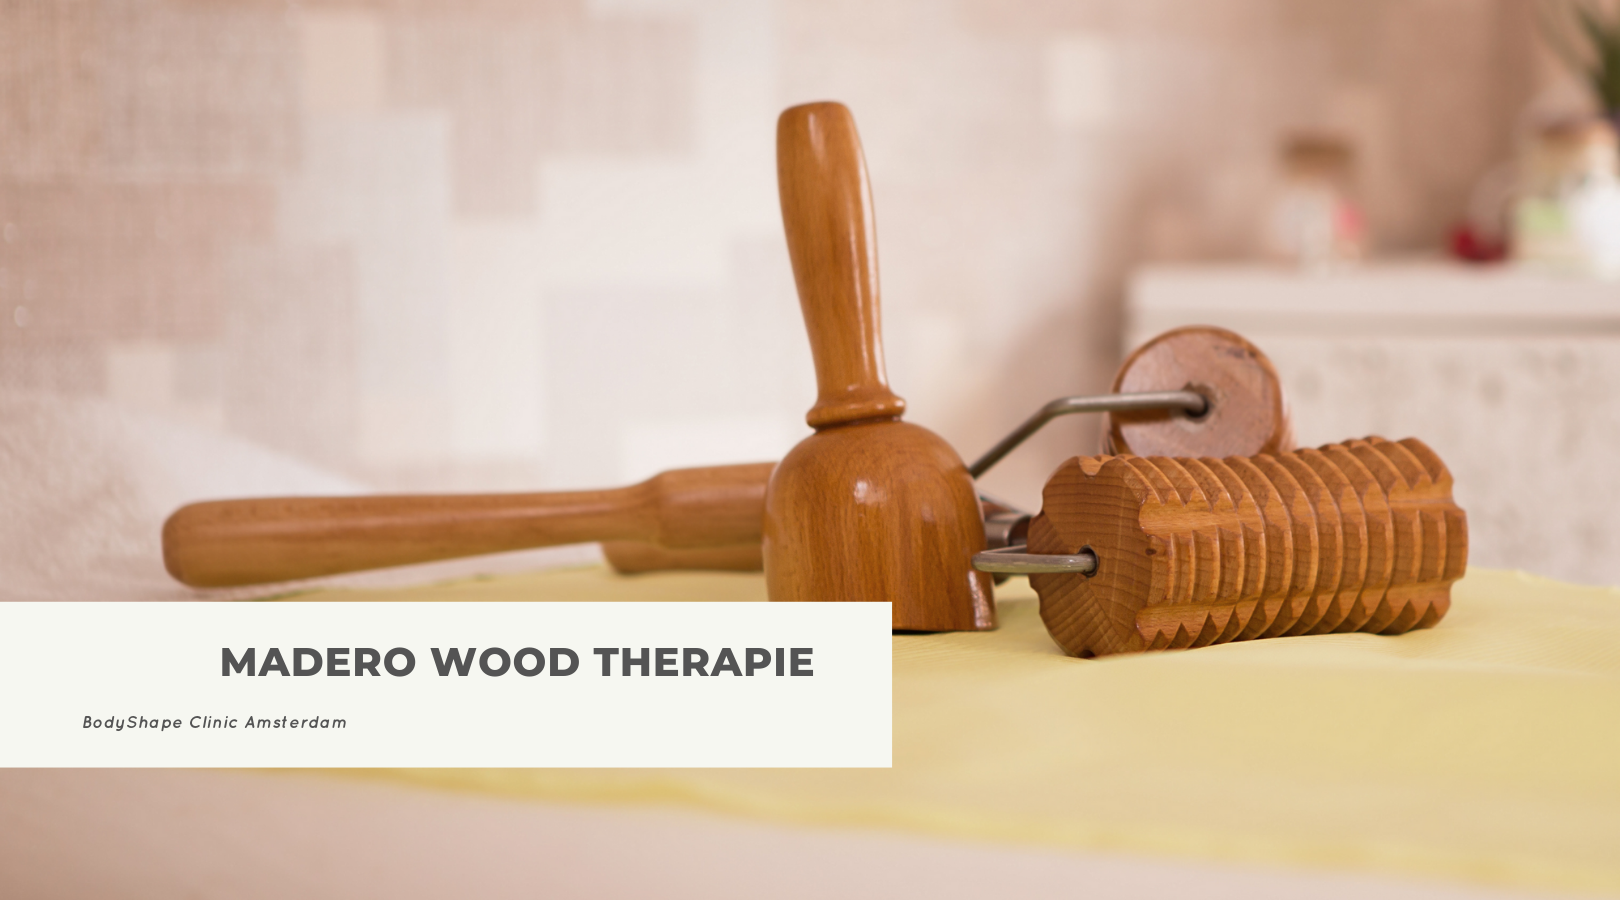 Madero Wood therapie